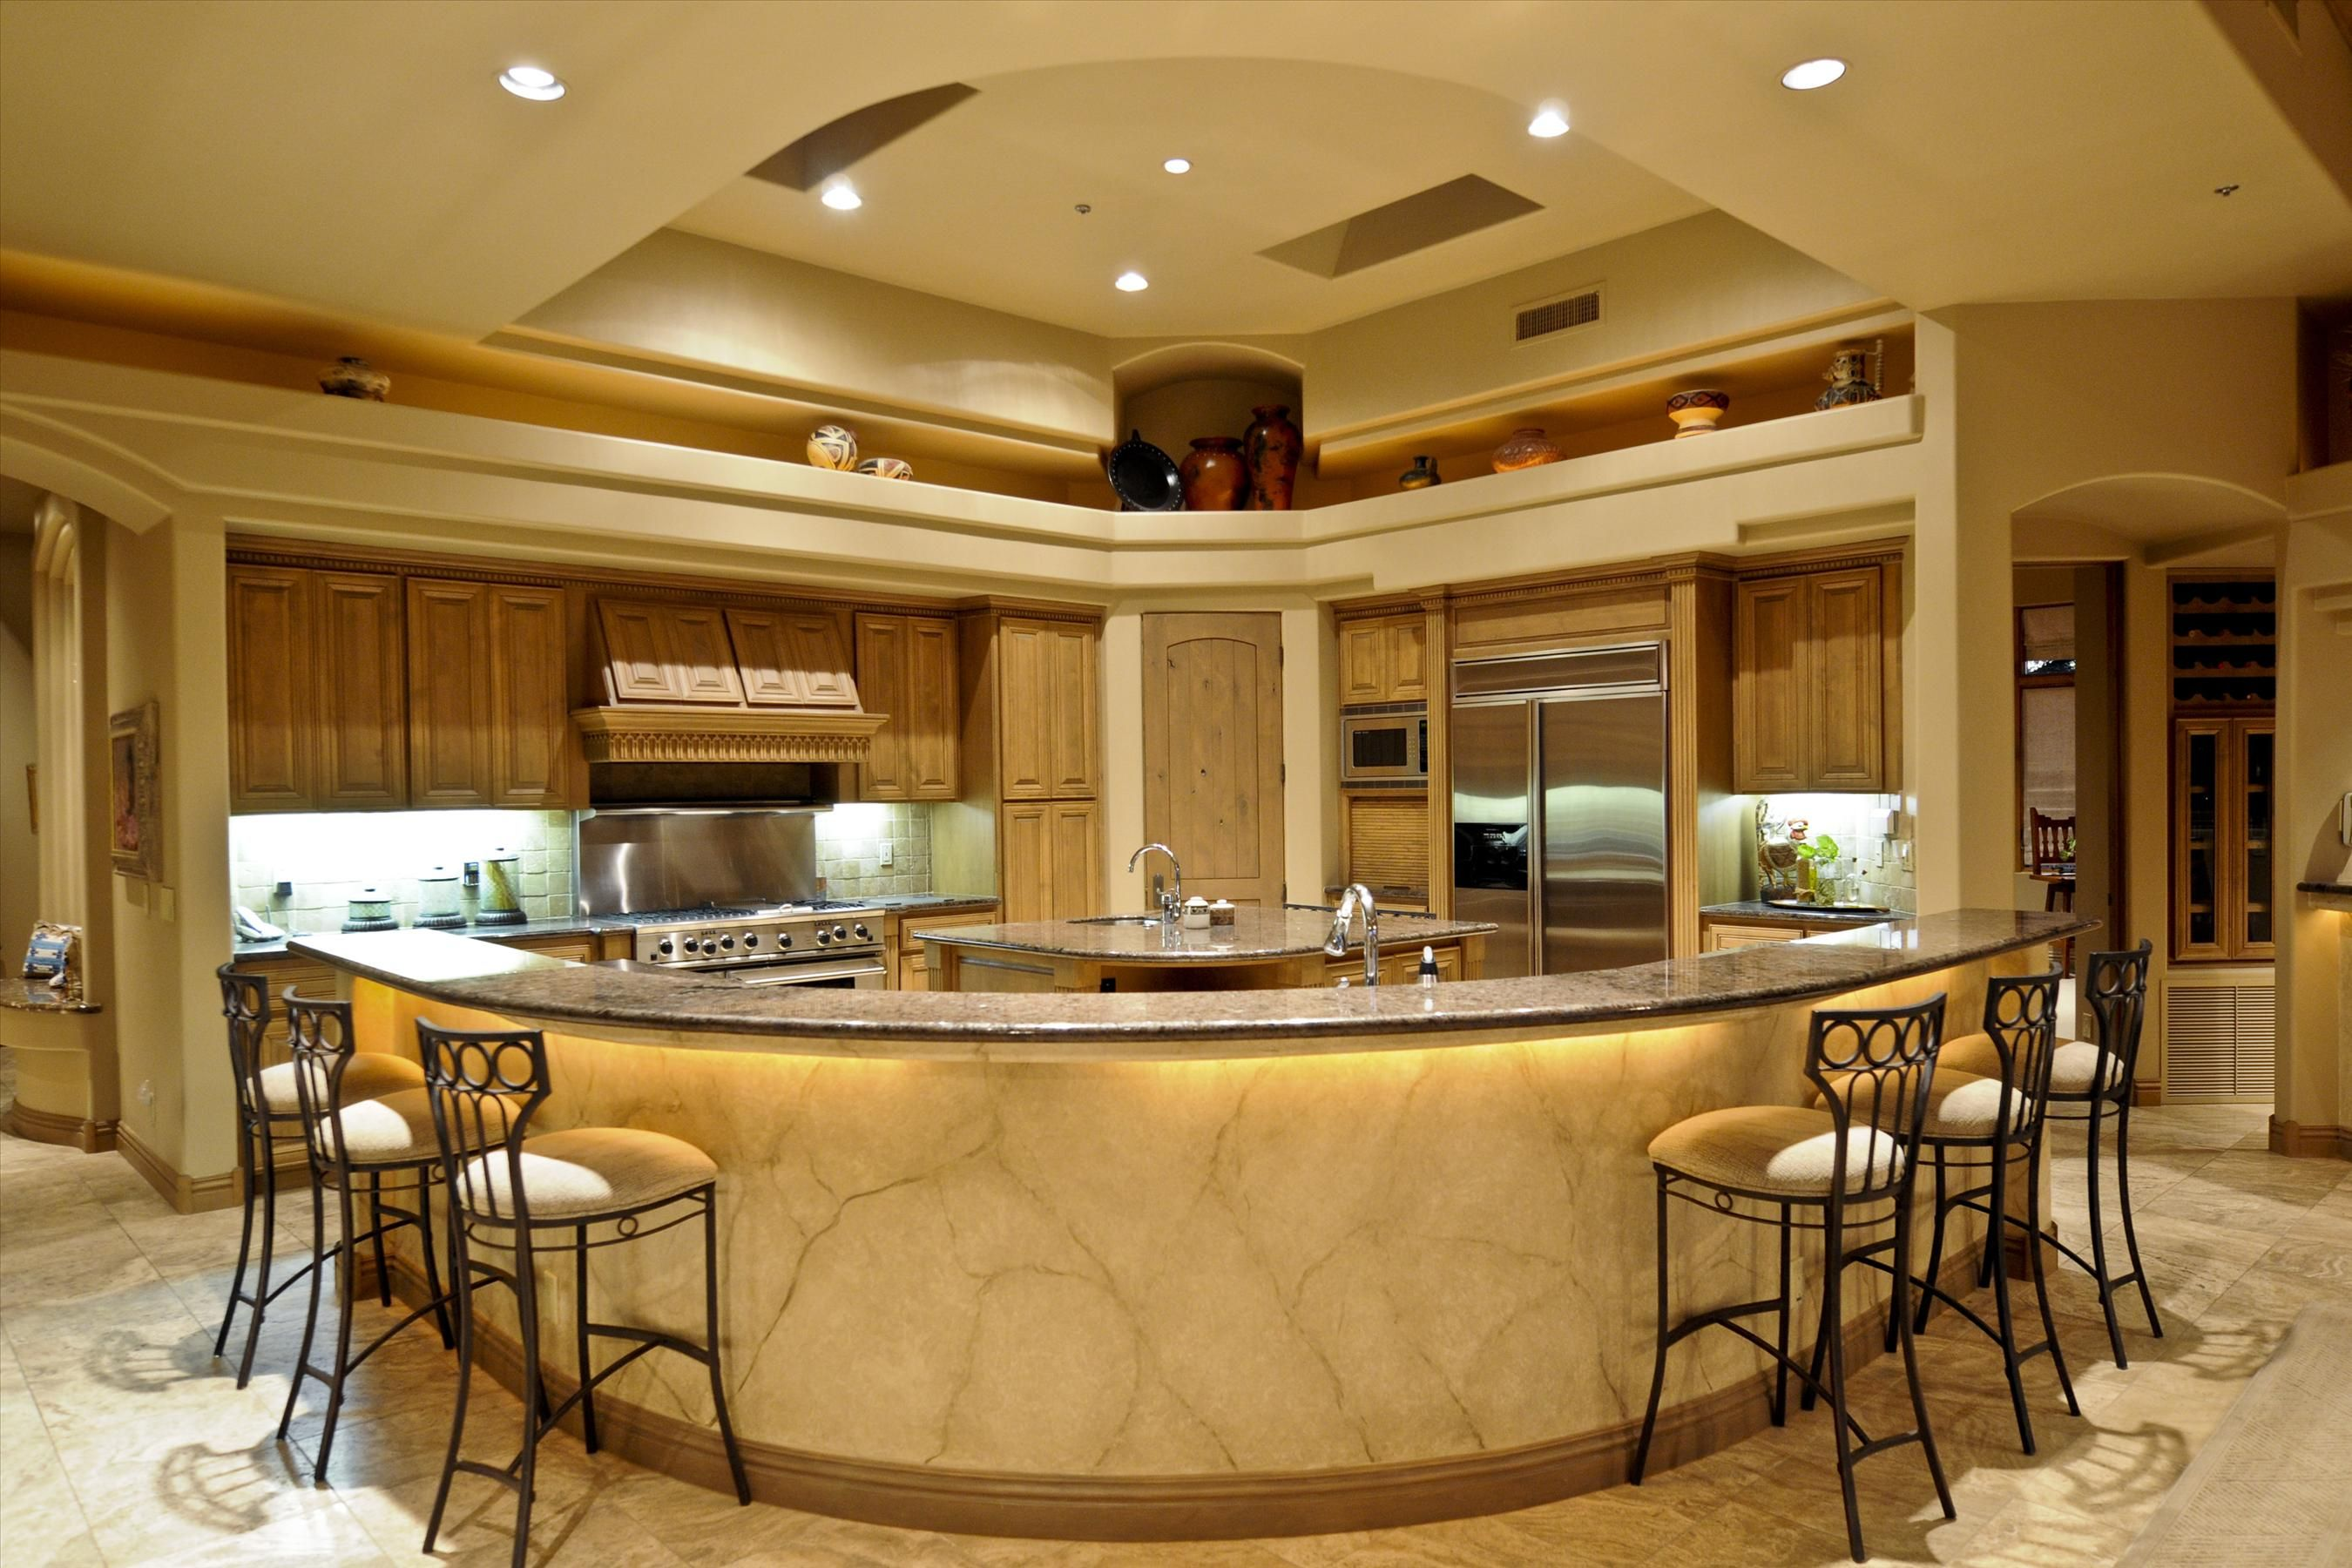 Premier luxury kitchens custom designed and for House kitchen design photos